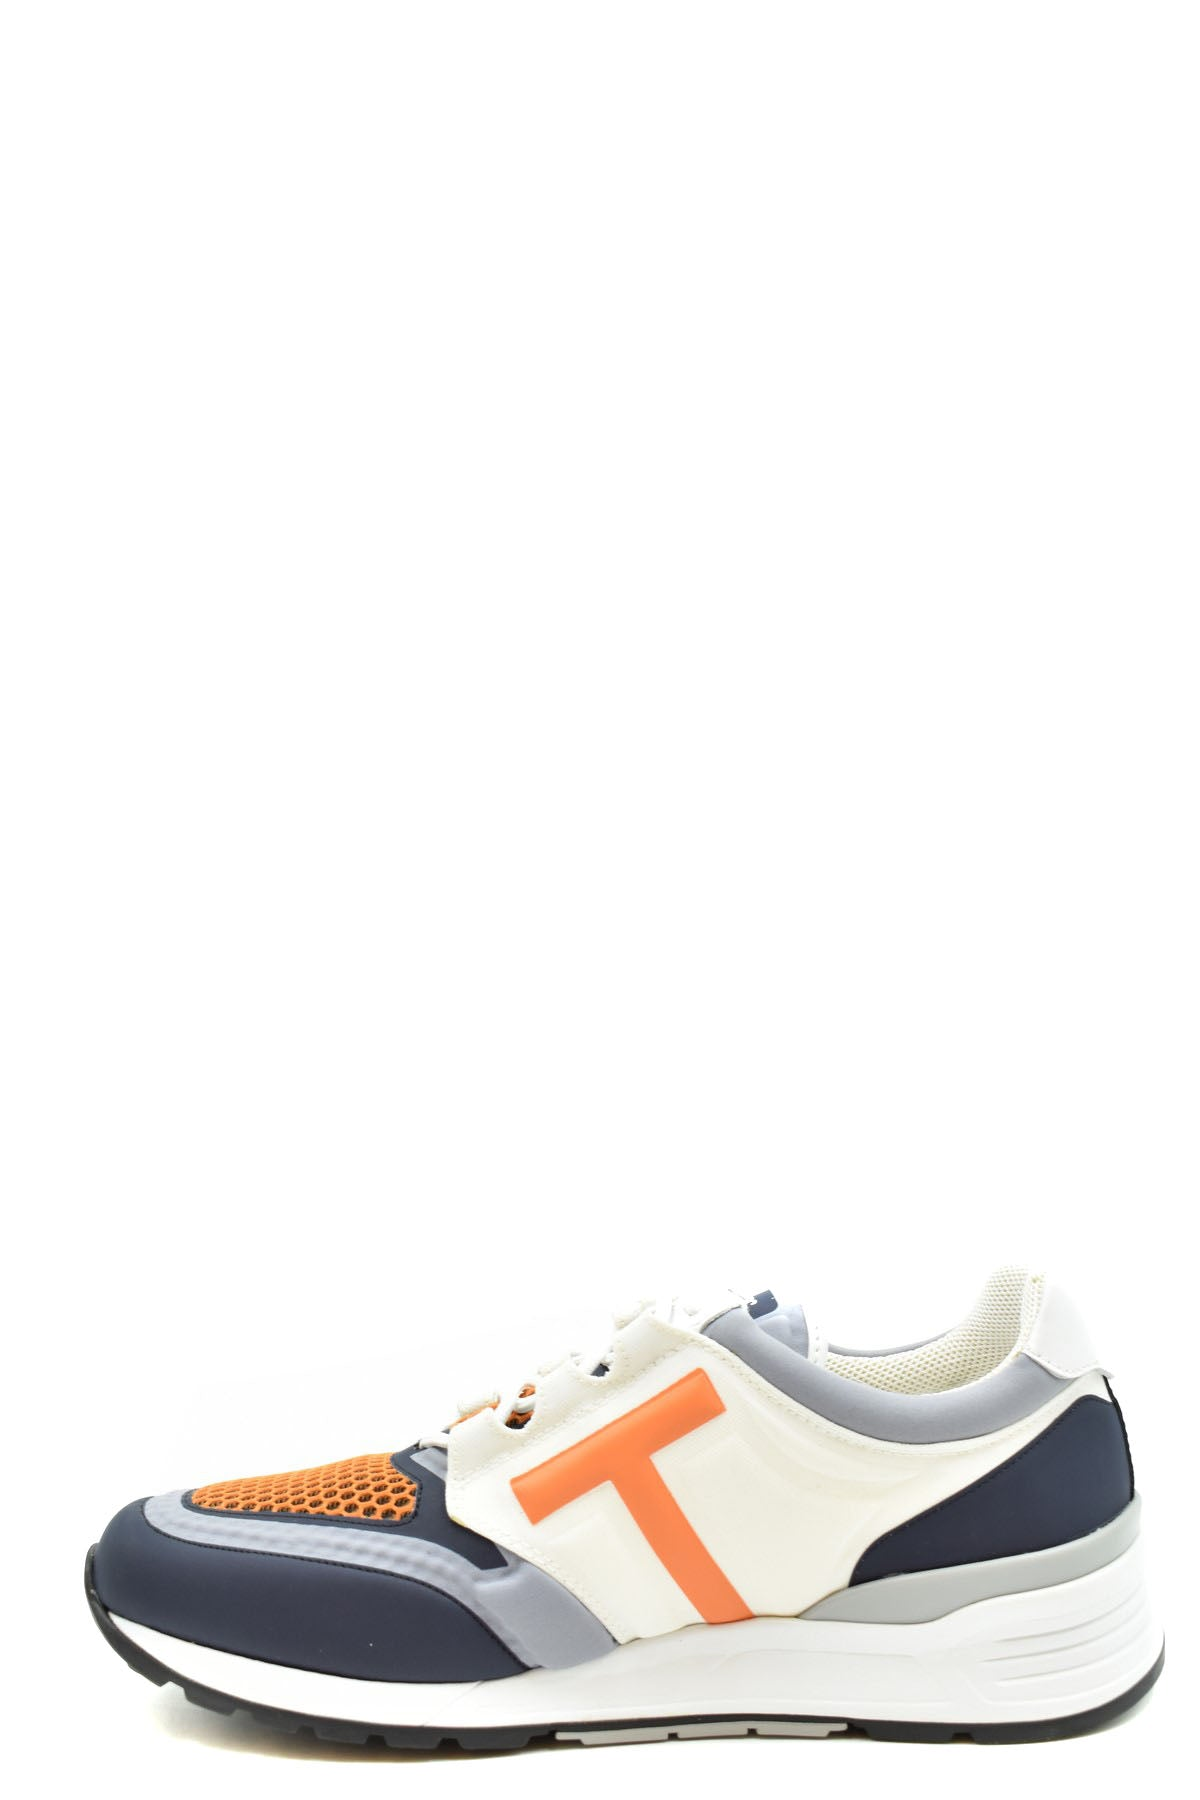 Shoes Tod'S-Sports & Entertainment - Sneakers-Product Details Terms: New With LabelMain Color: MulticolorType Of Accessory: ShoesSeason: Spring / SummerMade In: ItalyGender: ManSize: UkComposition: Nylon 100%Year: 2020Manufacturer Part Number: Xxm69As20Ksj77Dg-Keyomi-Sook